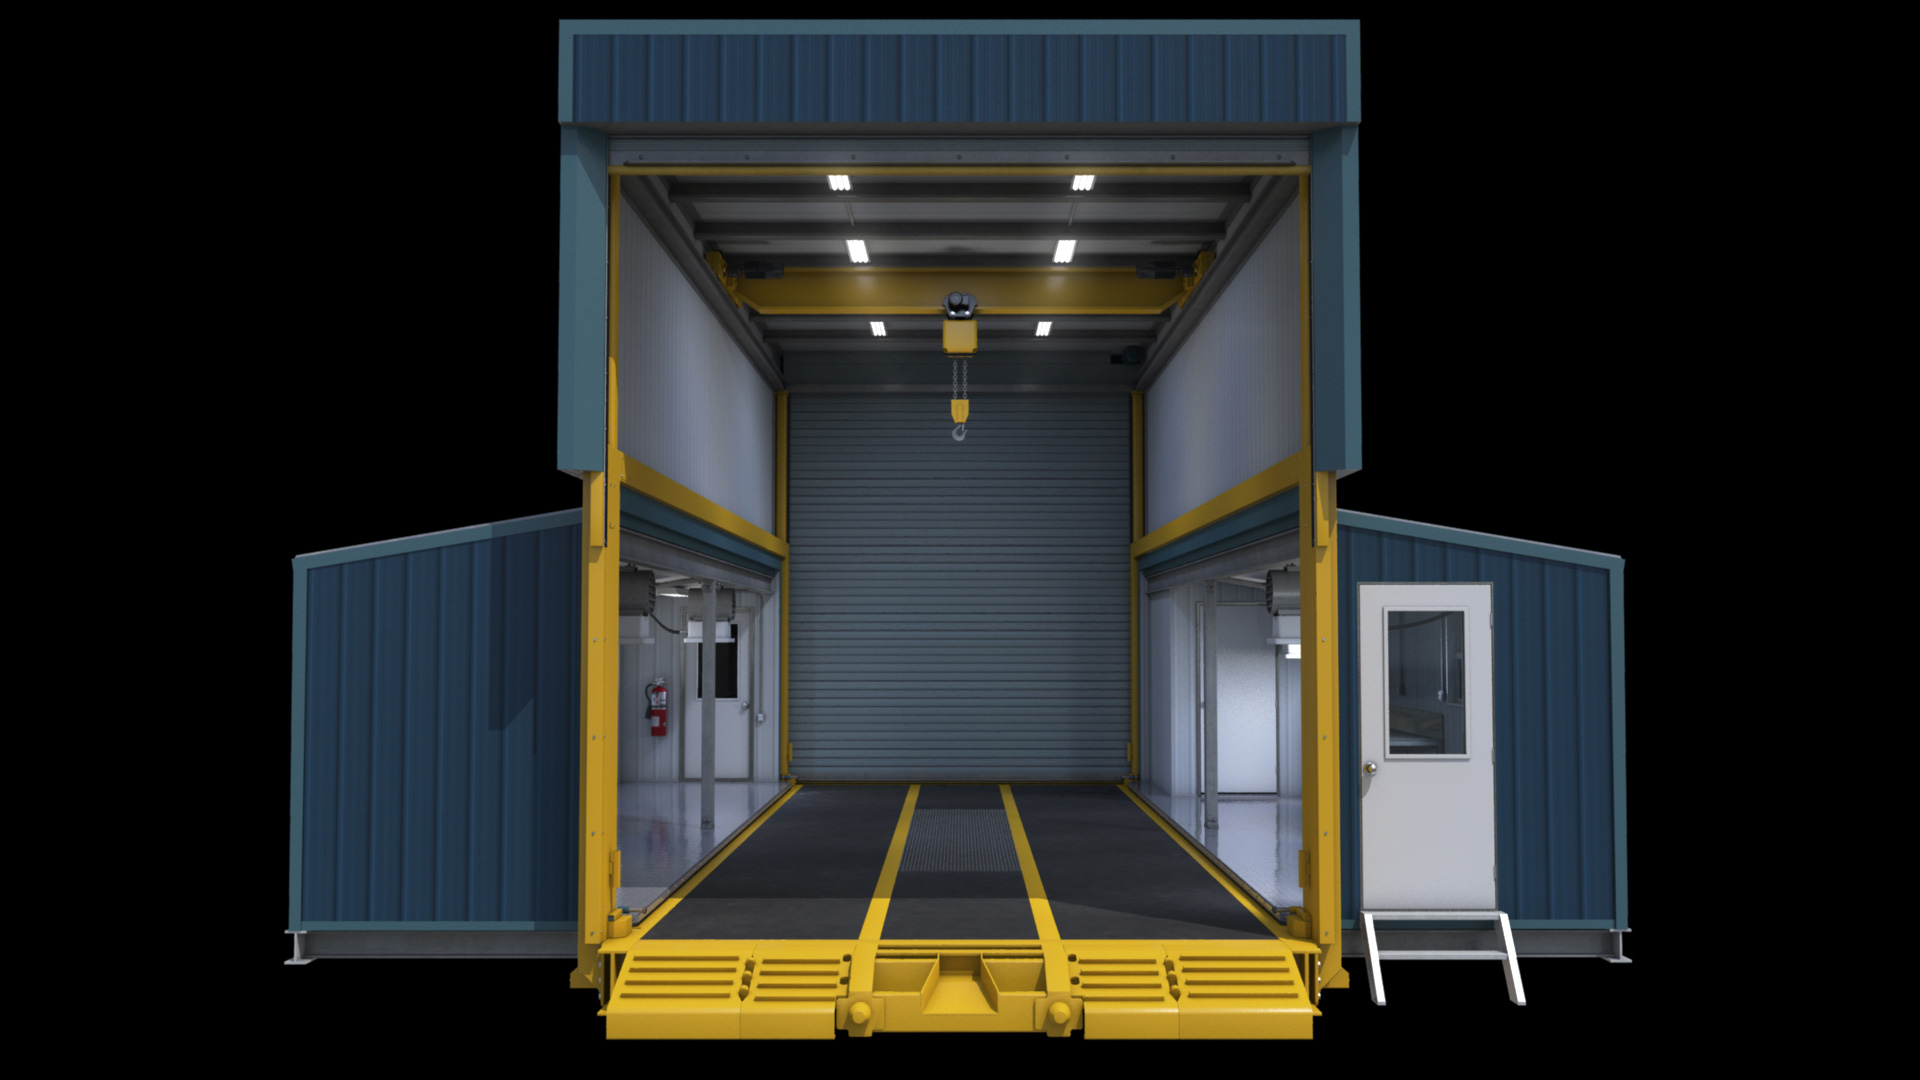 extreme portable buildings trans4mer main structure main door open thumbnail